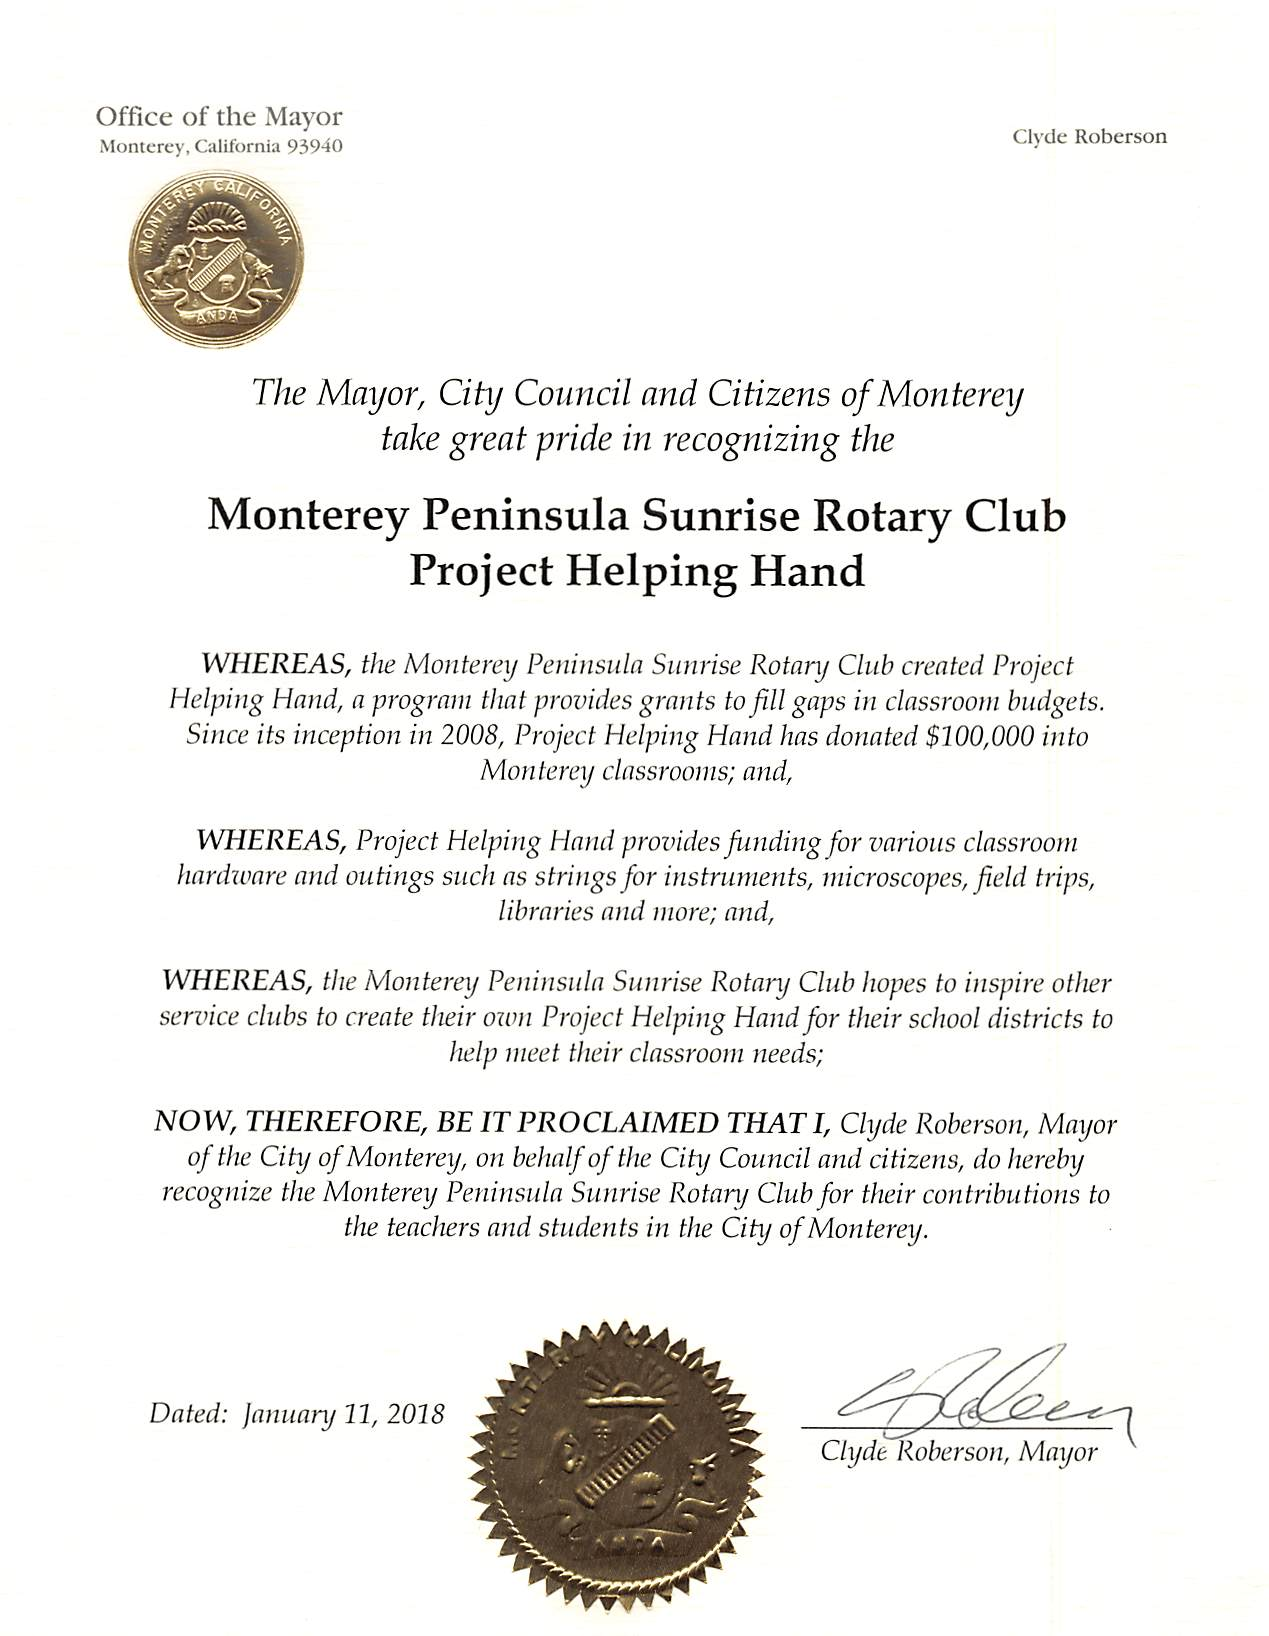 City of Monterey Recognizing Project Helping Hand - 1-11-2018